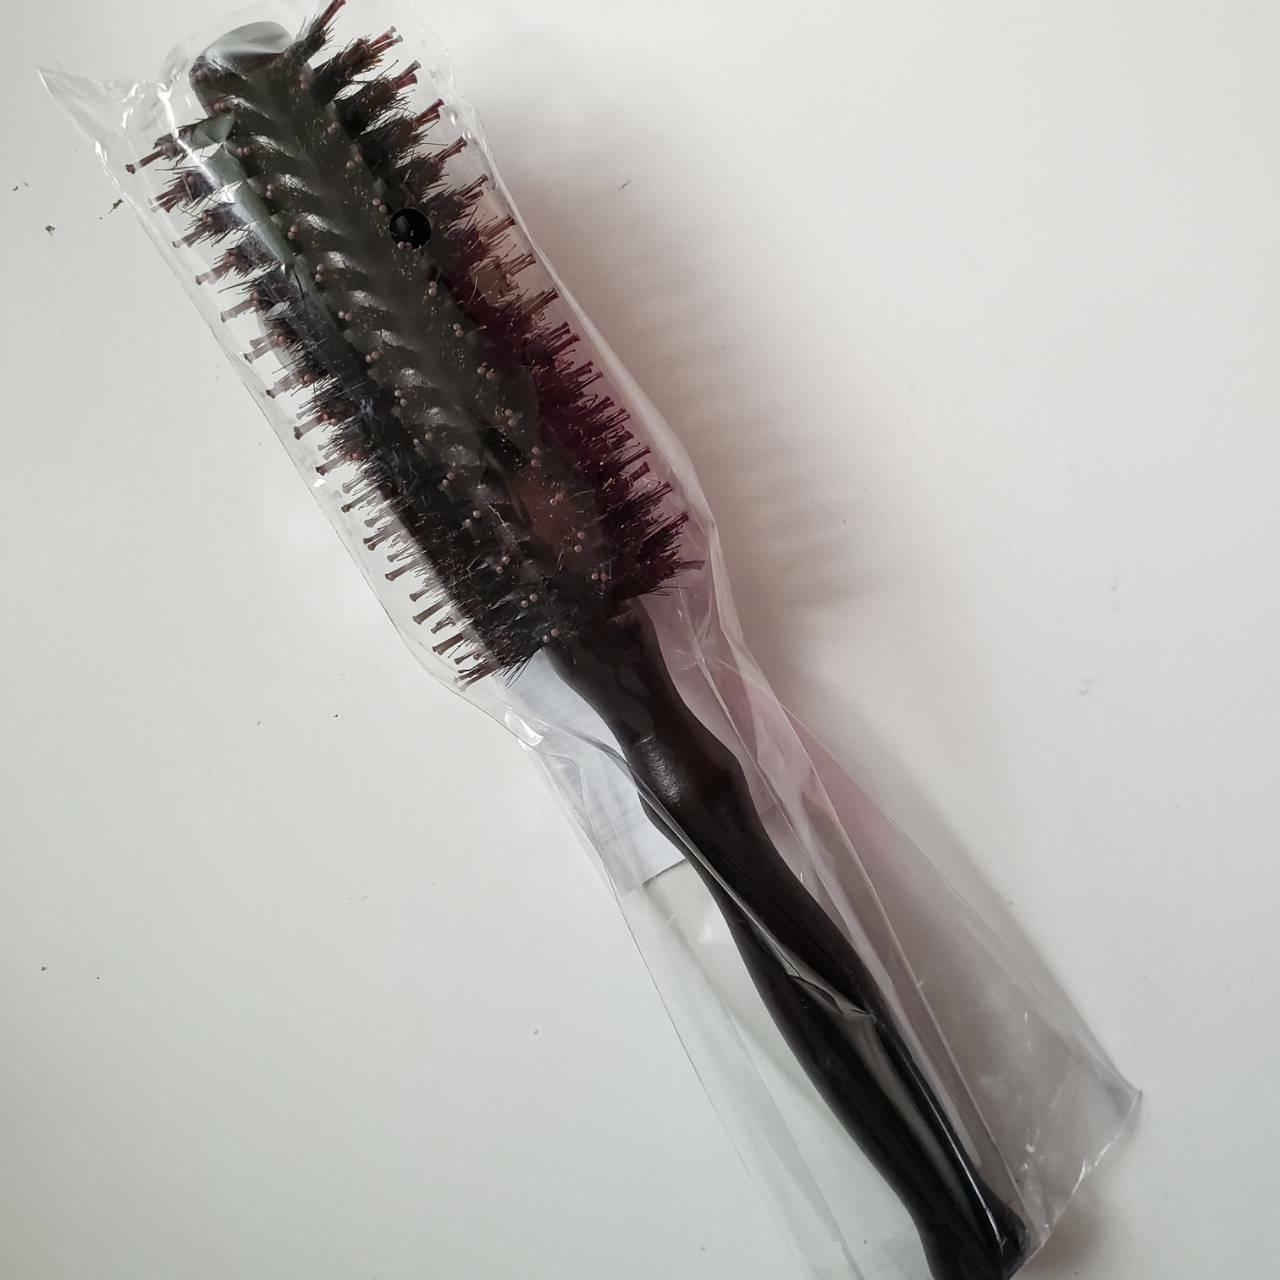 Boar Styling Hair Brush - Inch Diameter Dryer Curlin